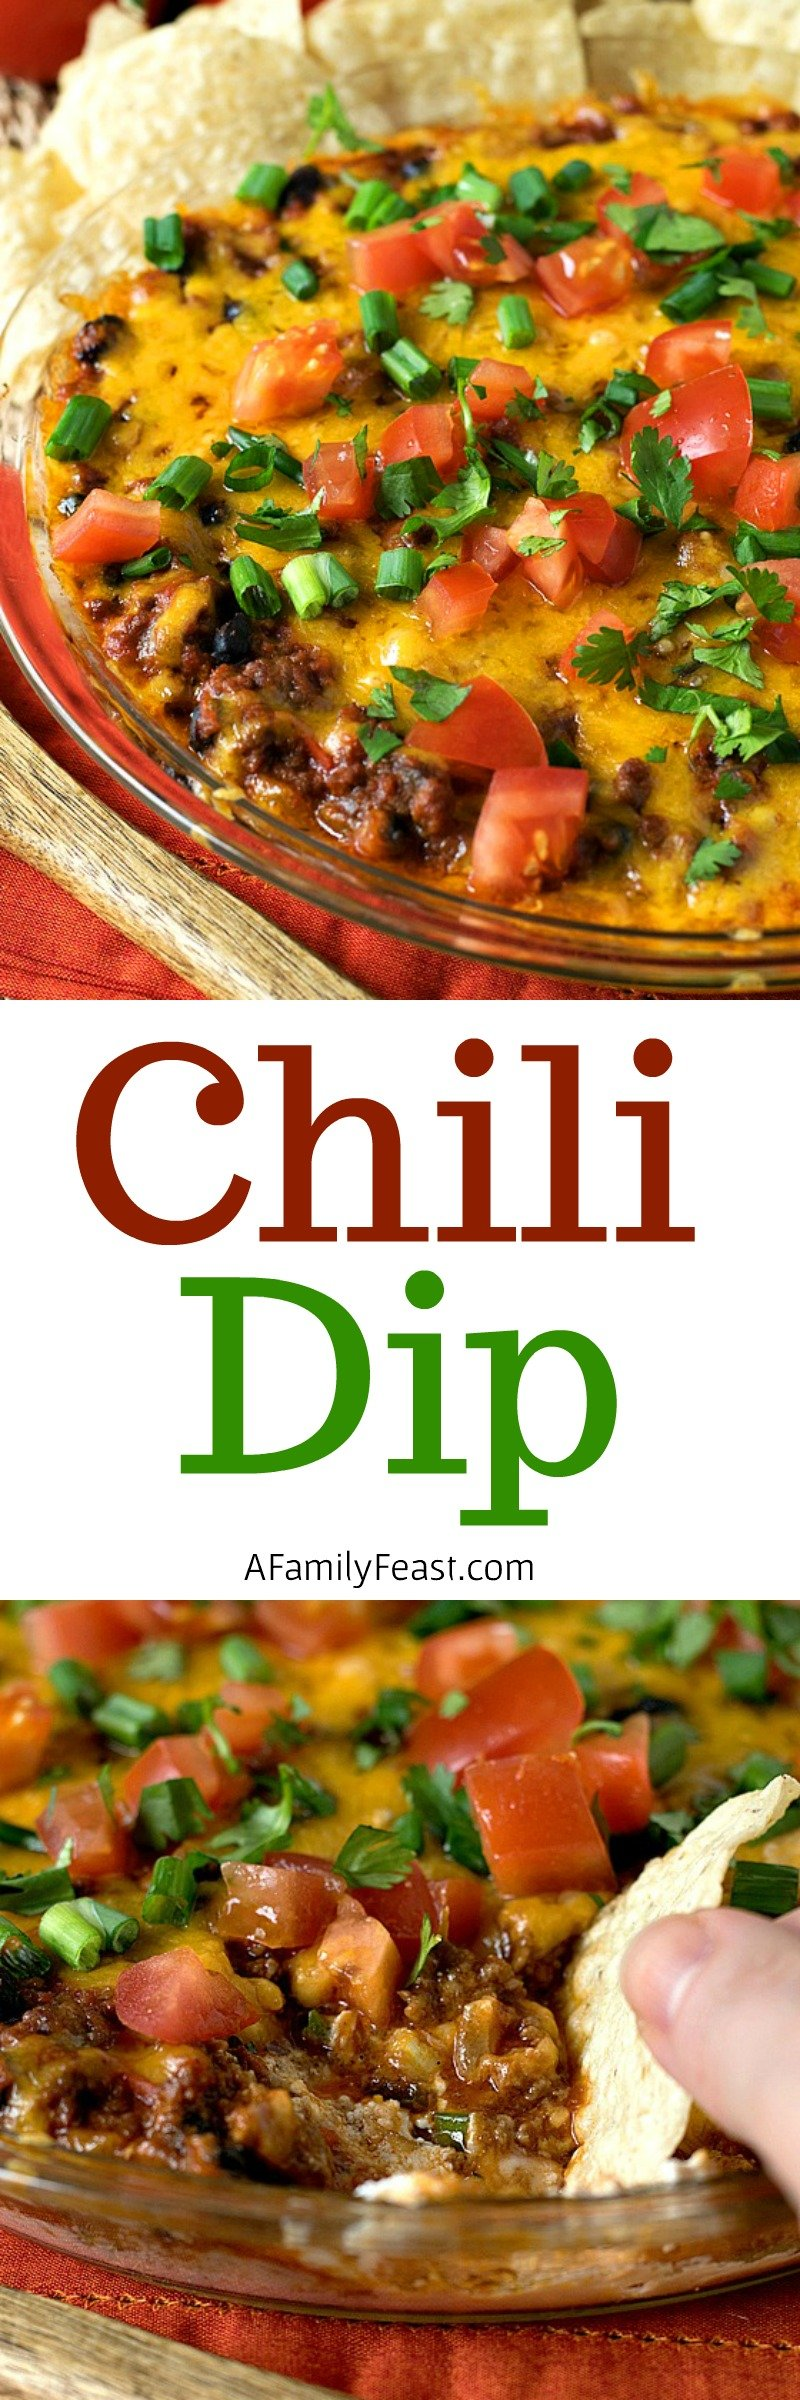 Chili Dip - A Family Feast